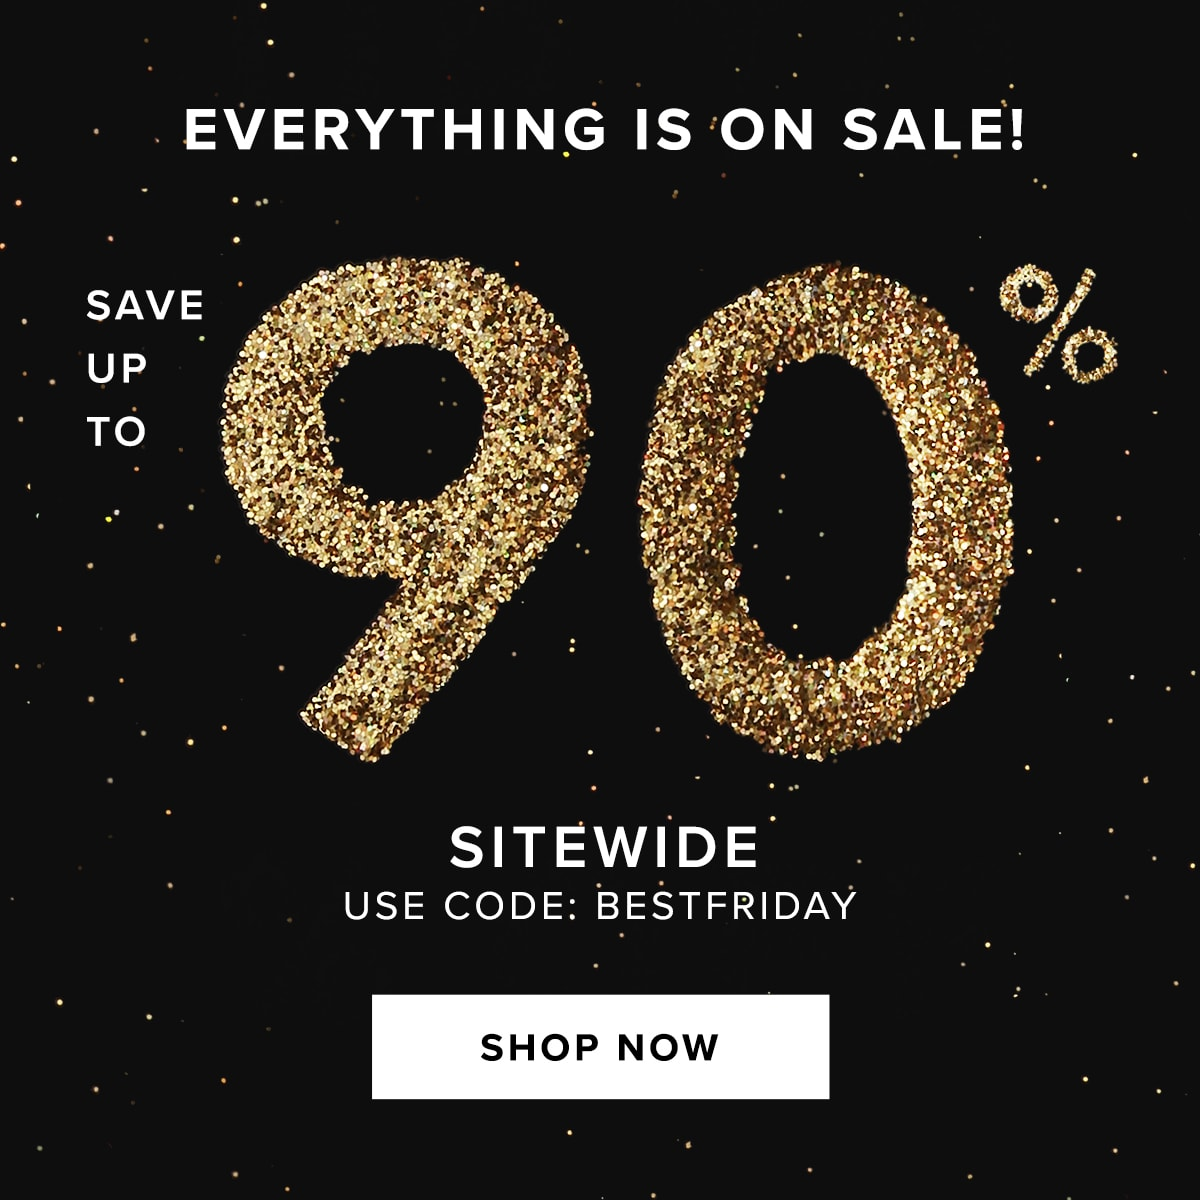 Everything is on sale! Save up to 90% off our Black Friday category